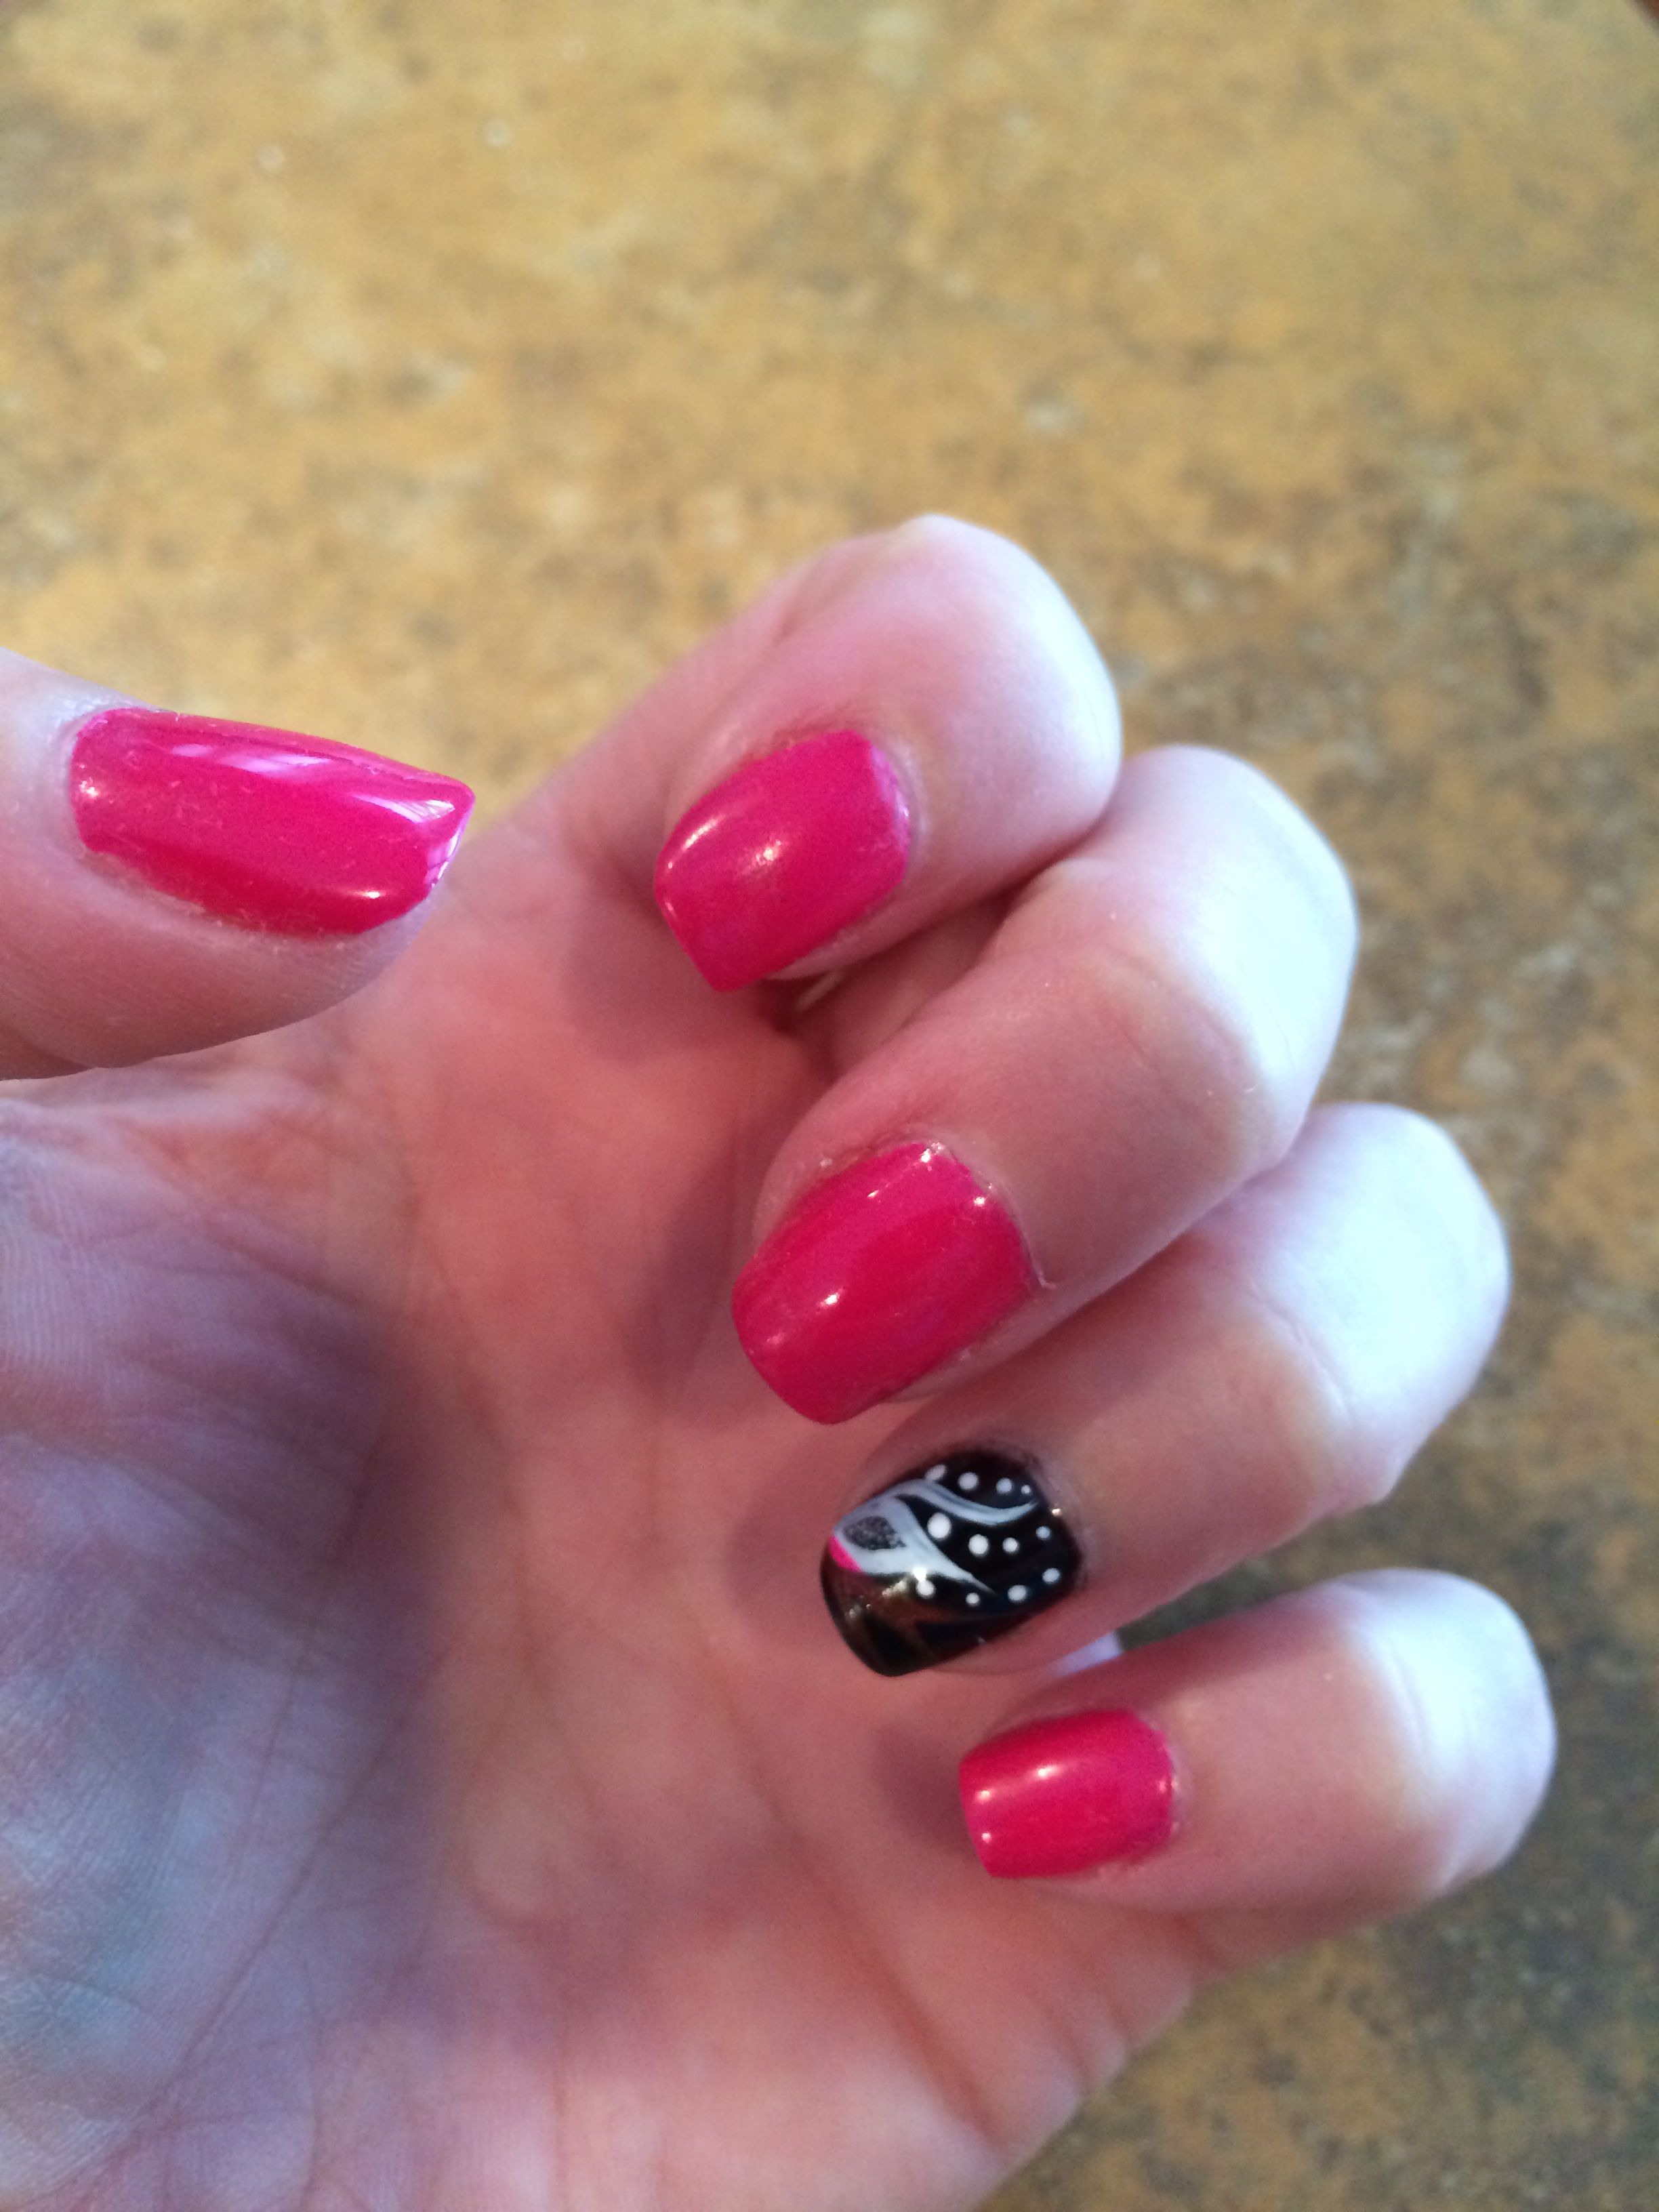 Raspberry Pink Nails Black With Flower Design Nails Pinterest